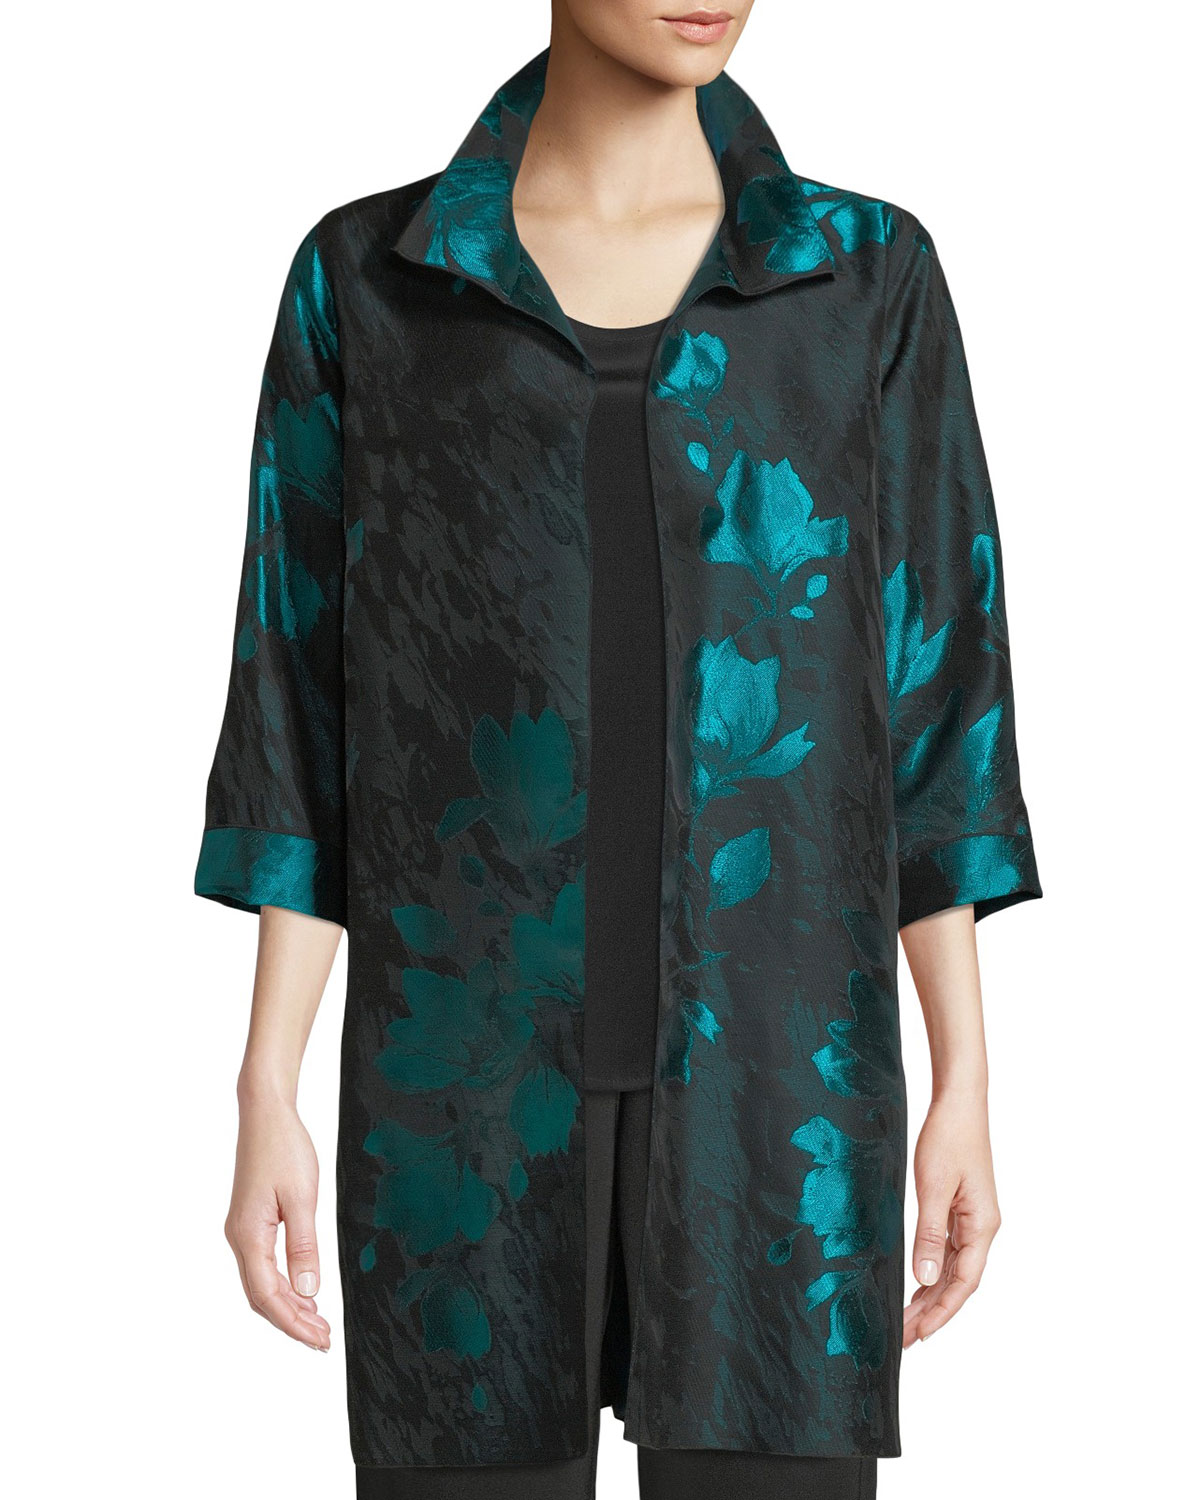 Caroline Rose Plus Size Midnight Garden Jacquard Topper Jacket